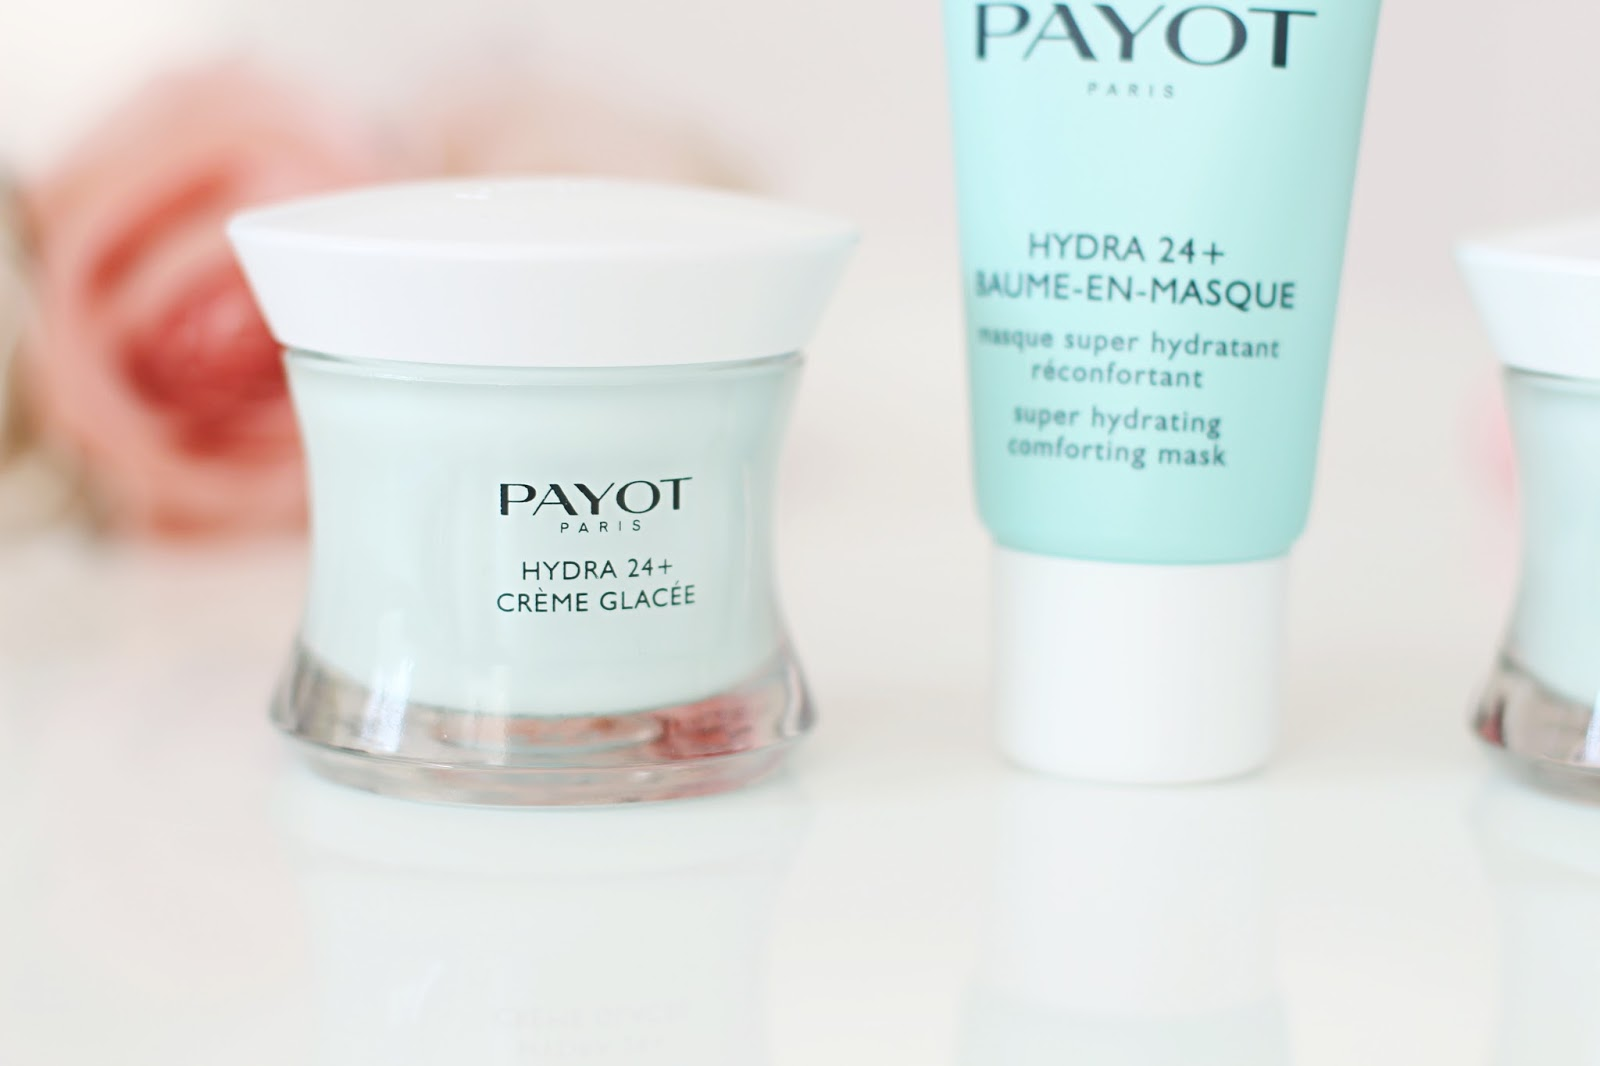 HYDRA 24 + Payot BAUME-EN-MASQUE